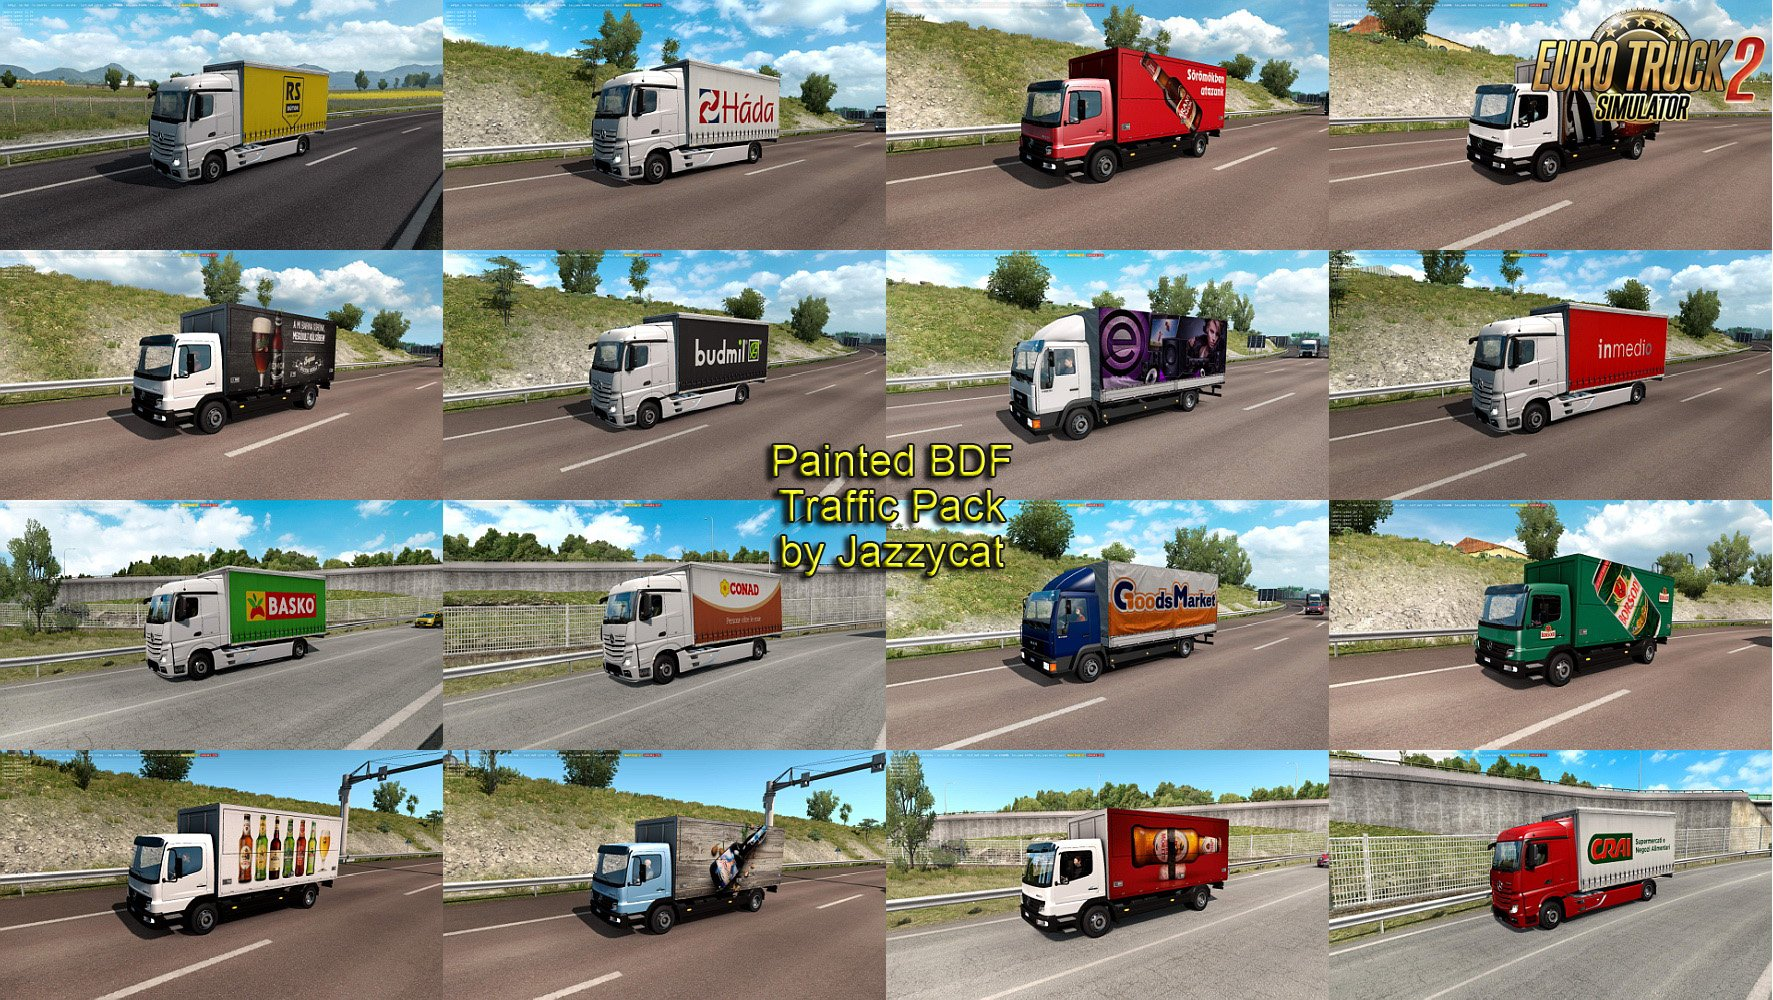 Painted BDF Traffic Pack v3.5 by Jazzycat